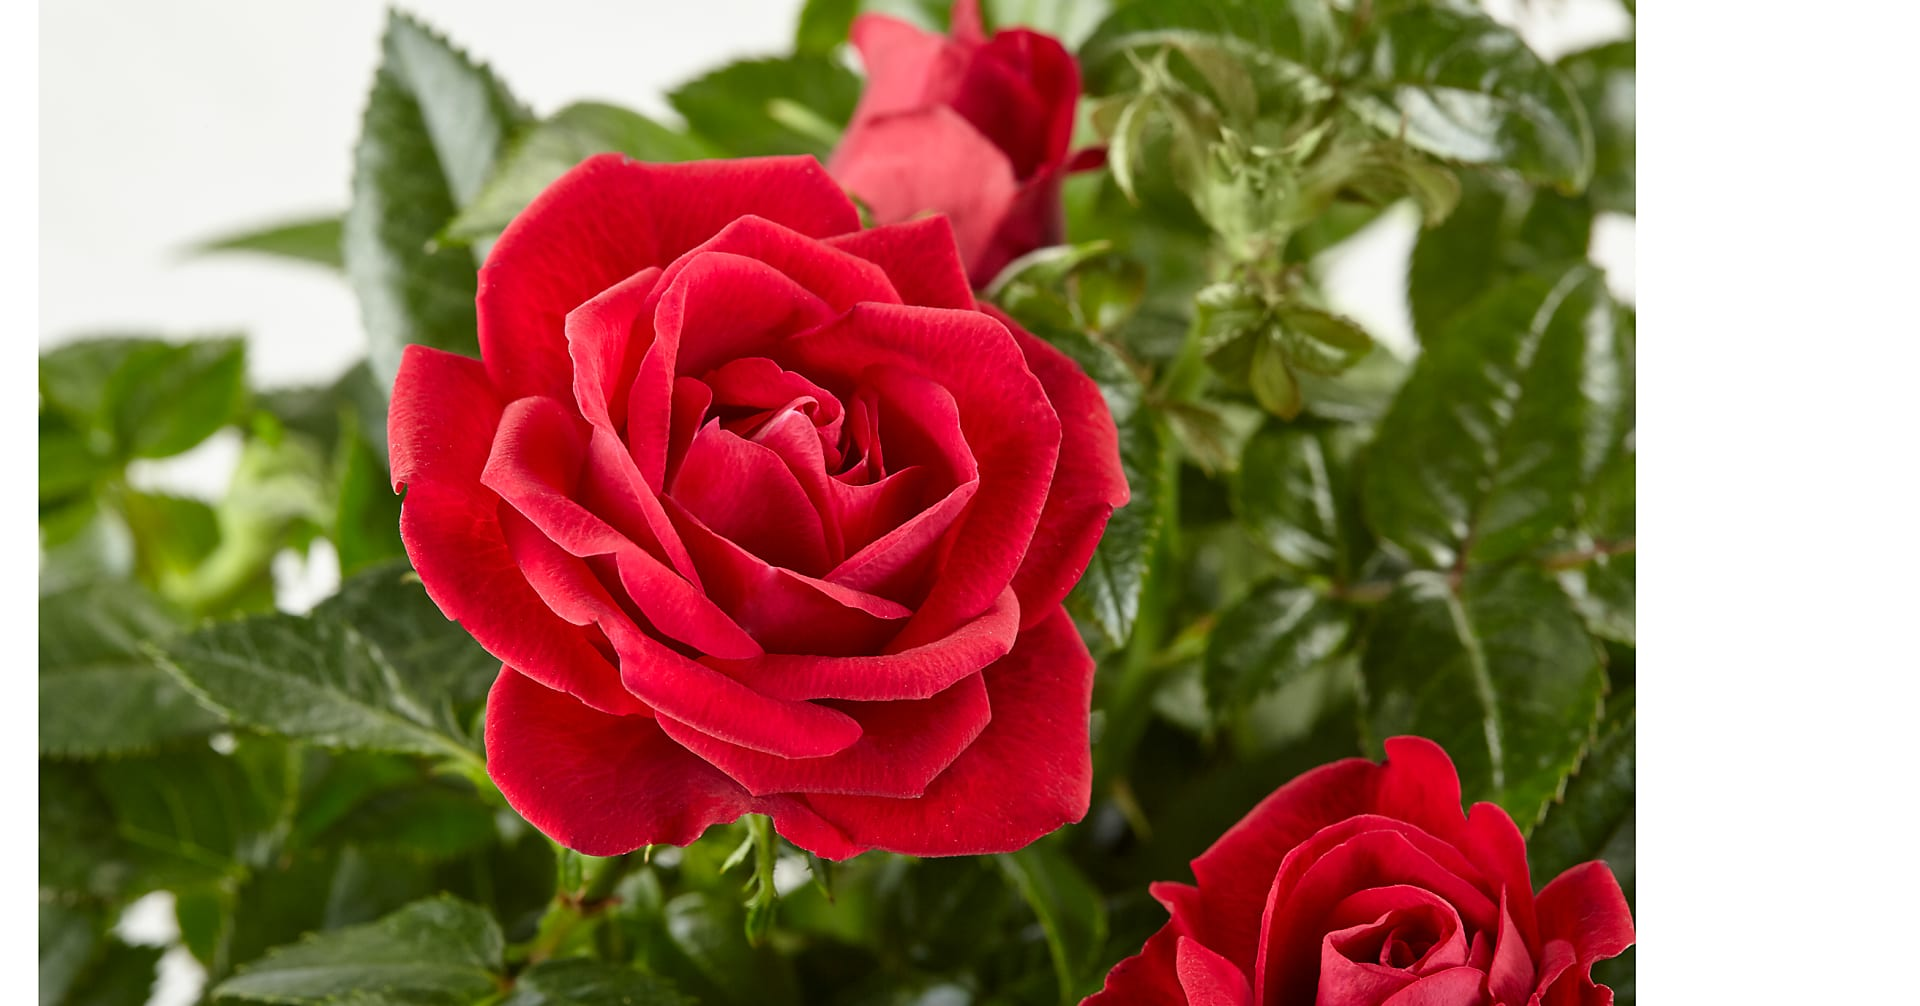 Valentine's Red Rose Plant - Image 2 Of 2